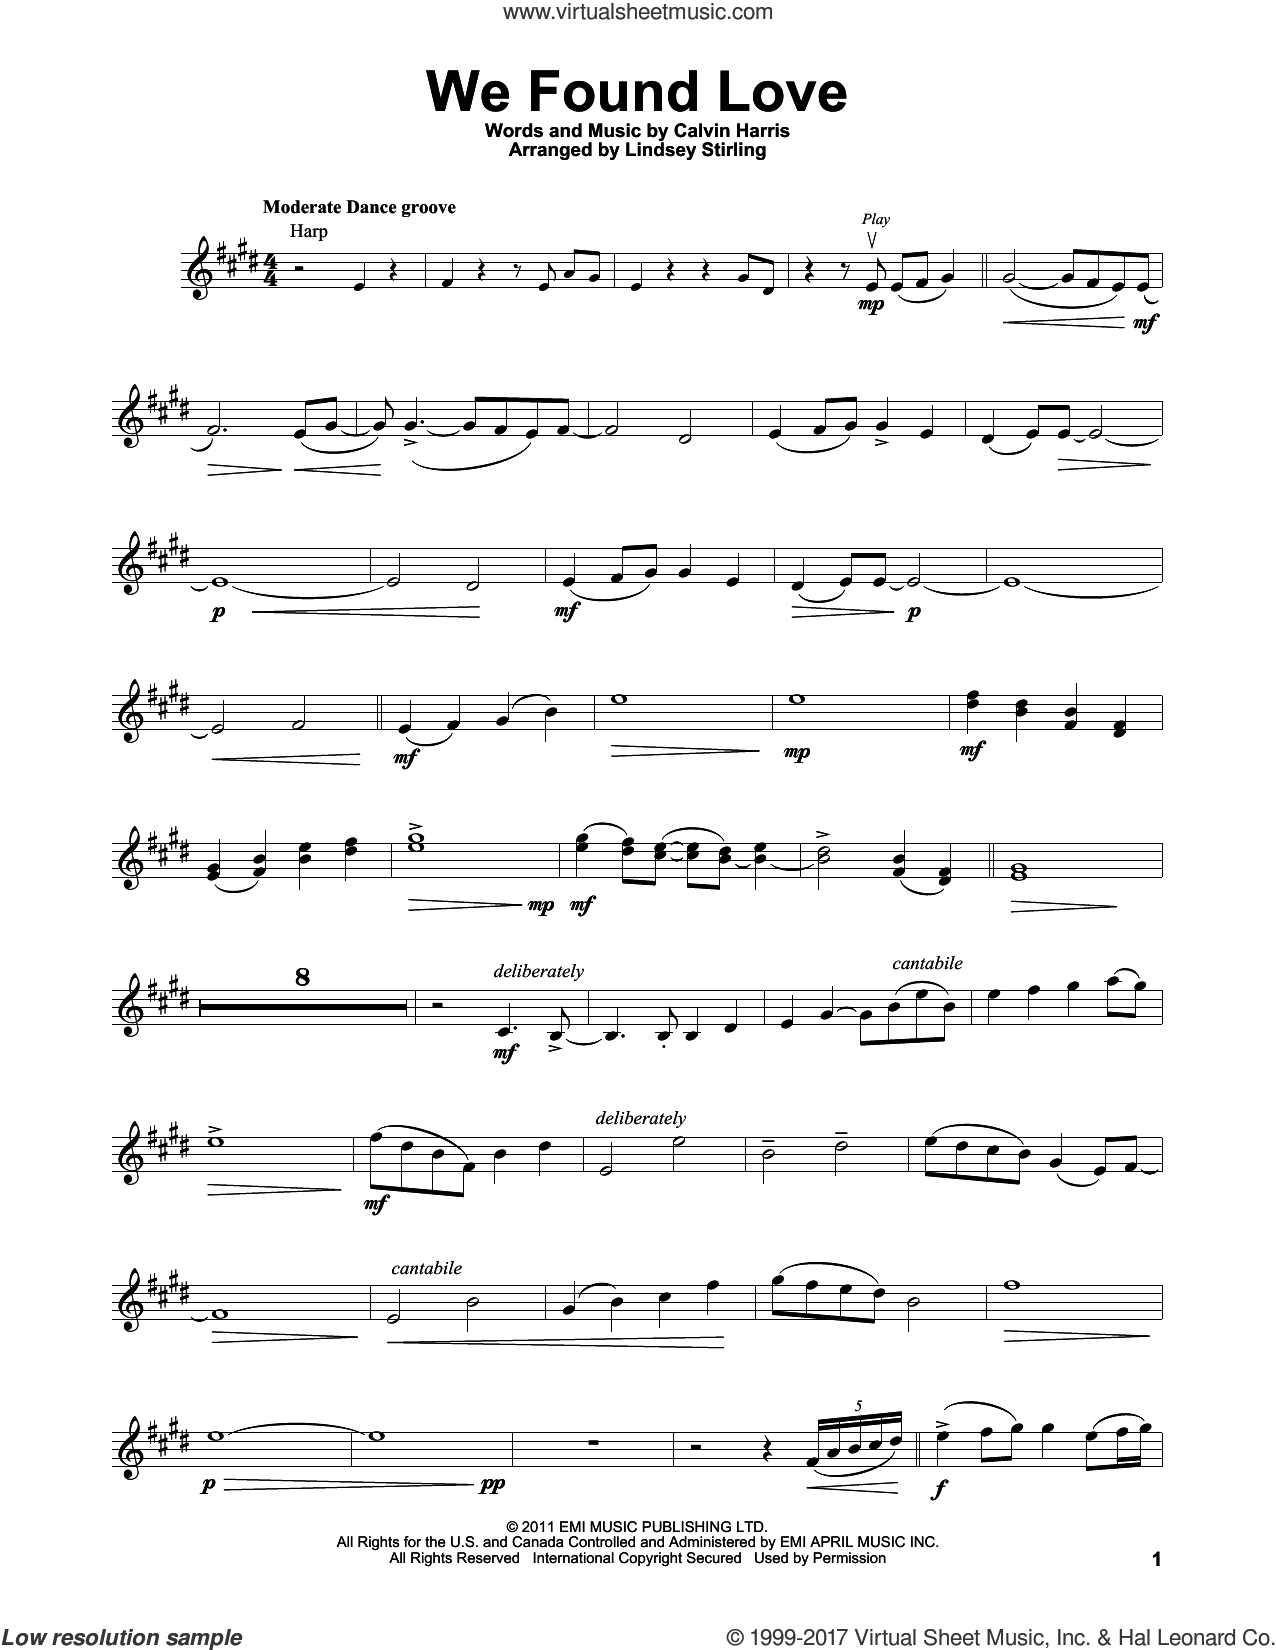 We Found Love sheet music for violin solo by Lindsey Stirling, Rihanna featuring Calvin Harris and Calvin Harris, wedding score, intermediate